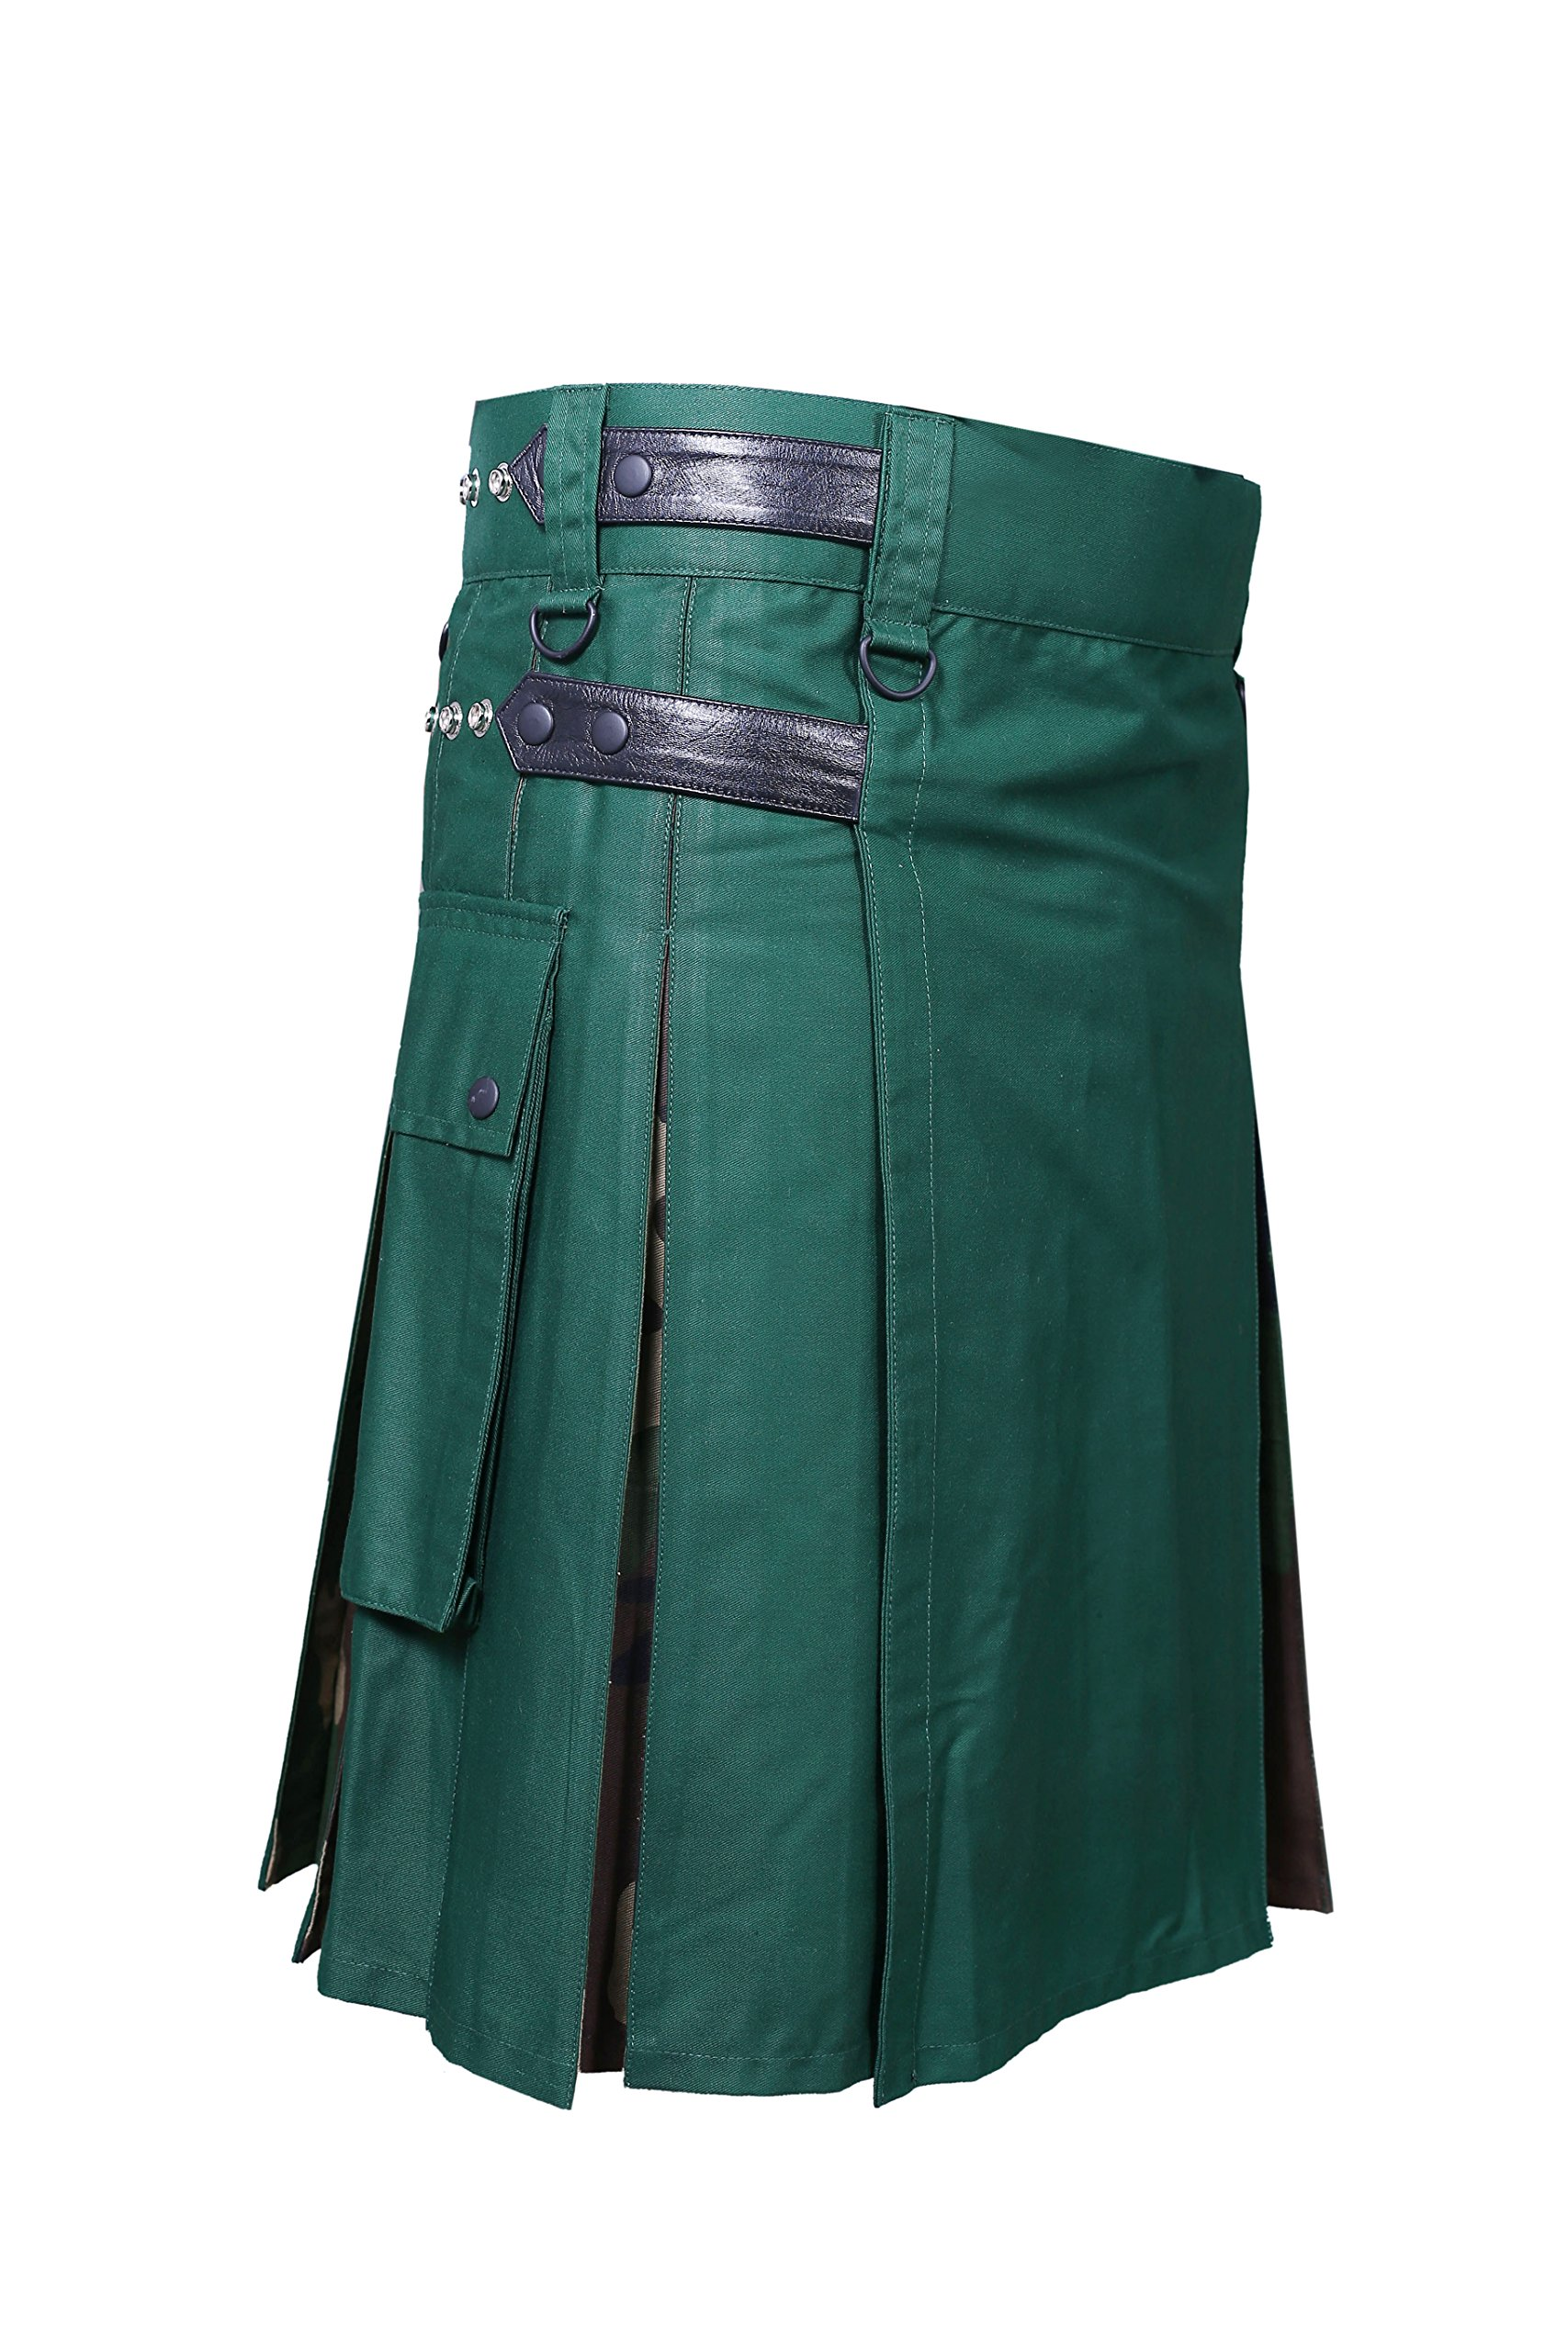 Forest Green & Camouflage Utility Kilt (Belly Button Measurements 32)